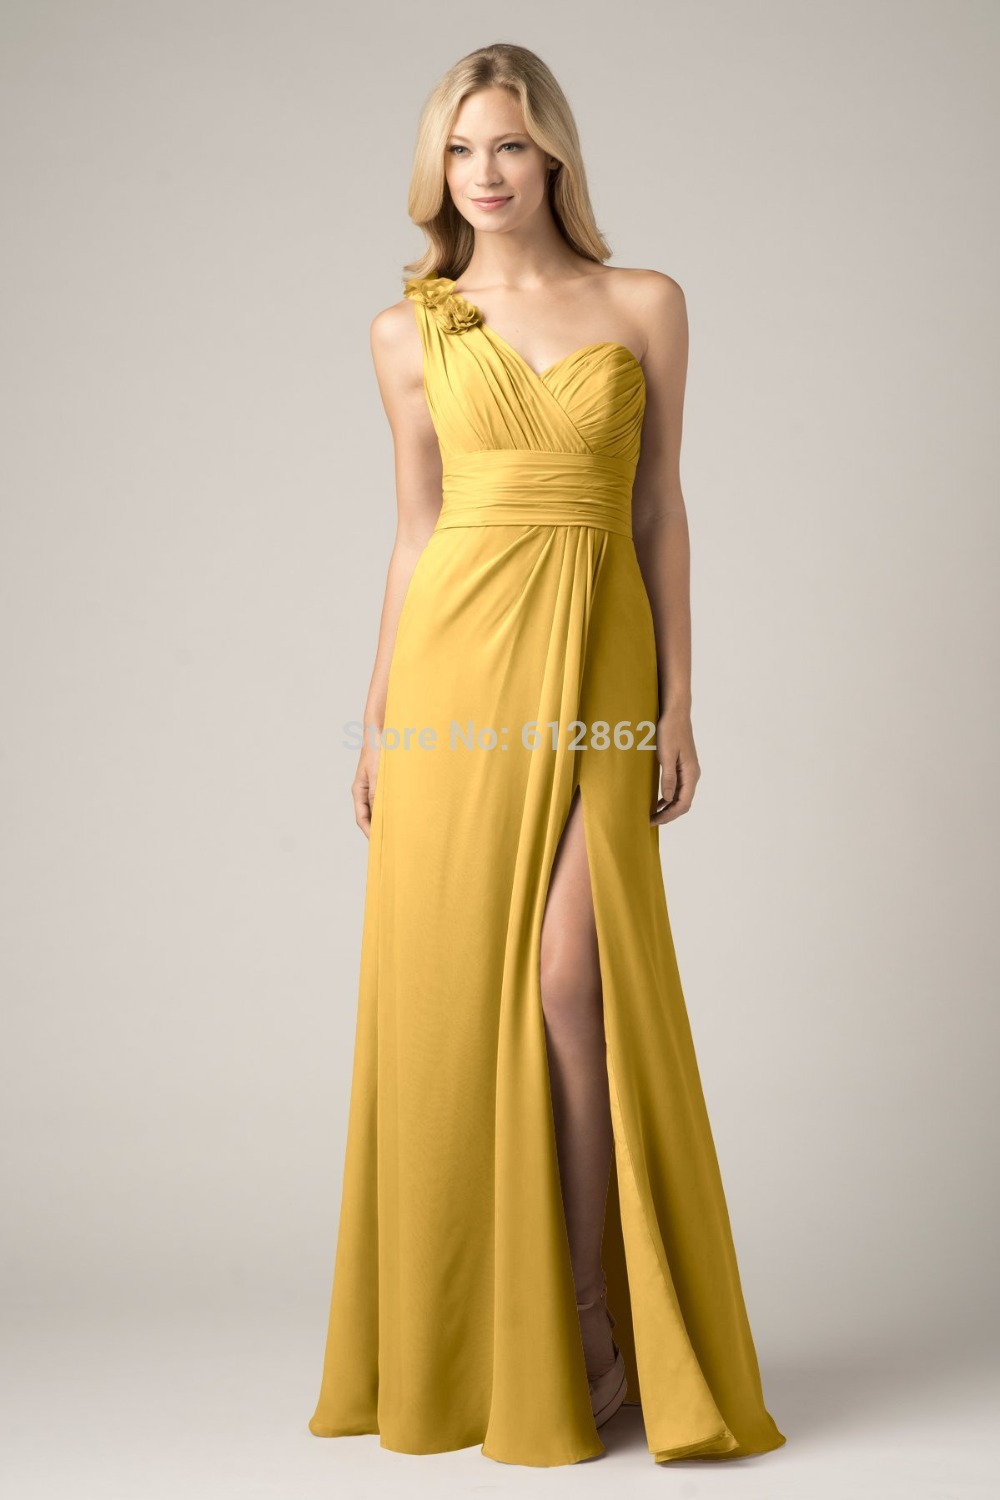 Golden yellow bridesmaid dresses longbridesmaid dressesdressesss golden yellow bridesmaid dresses long ombrellifo Gallery